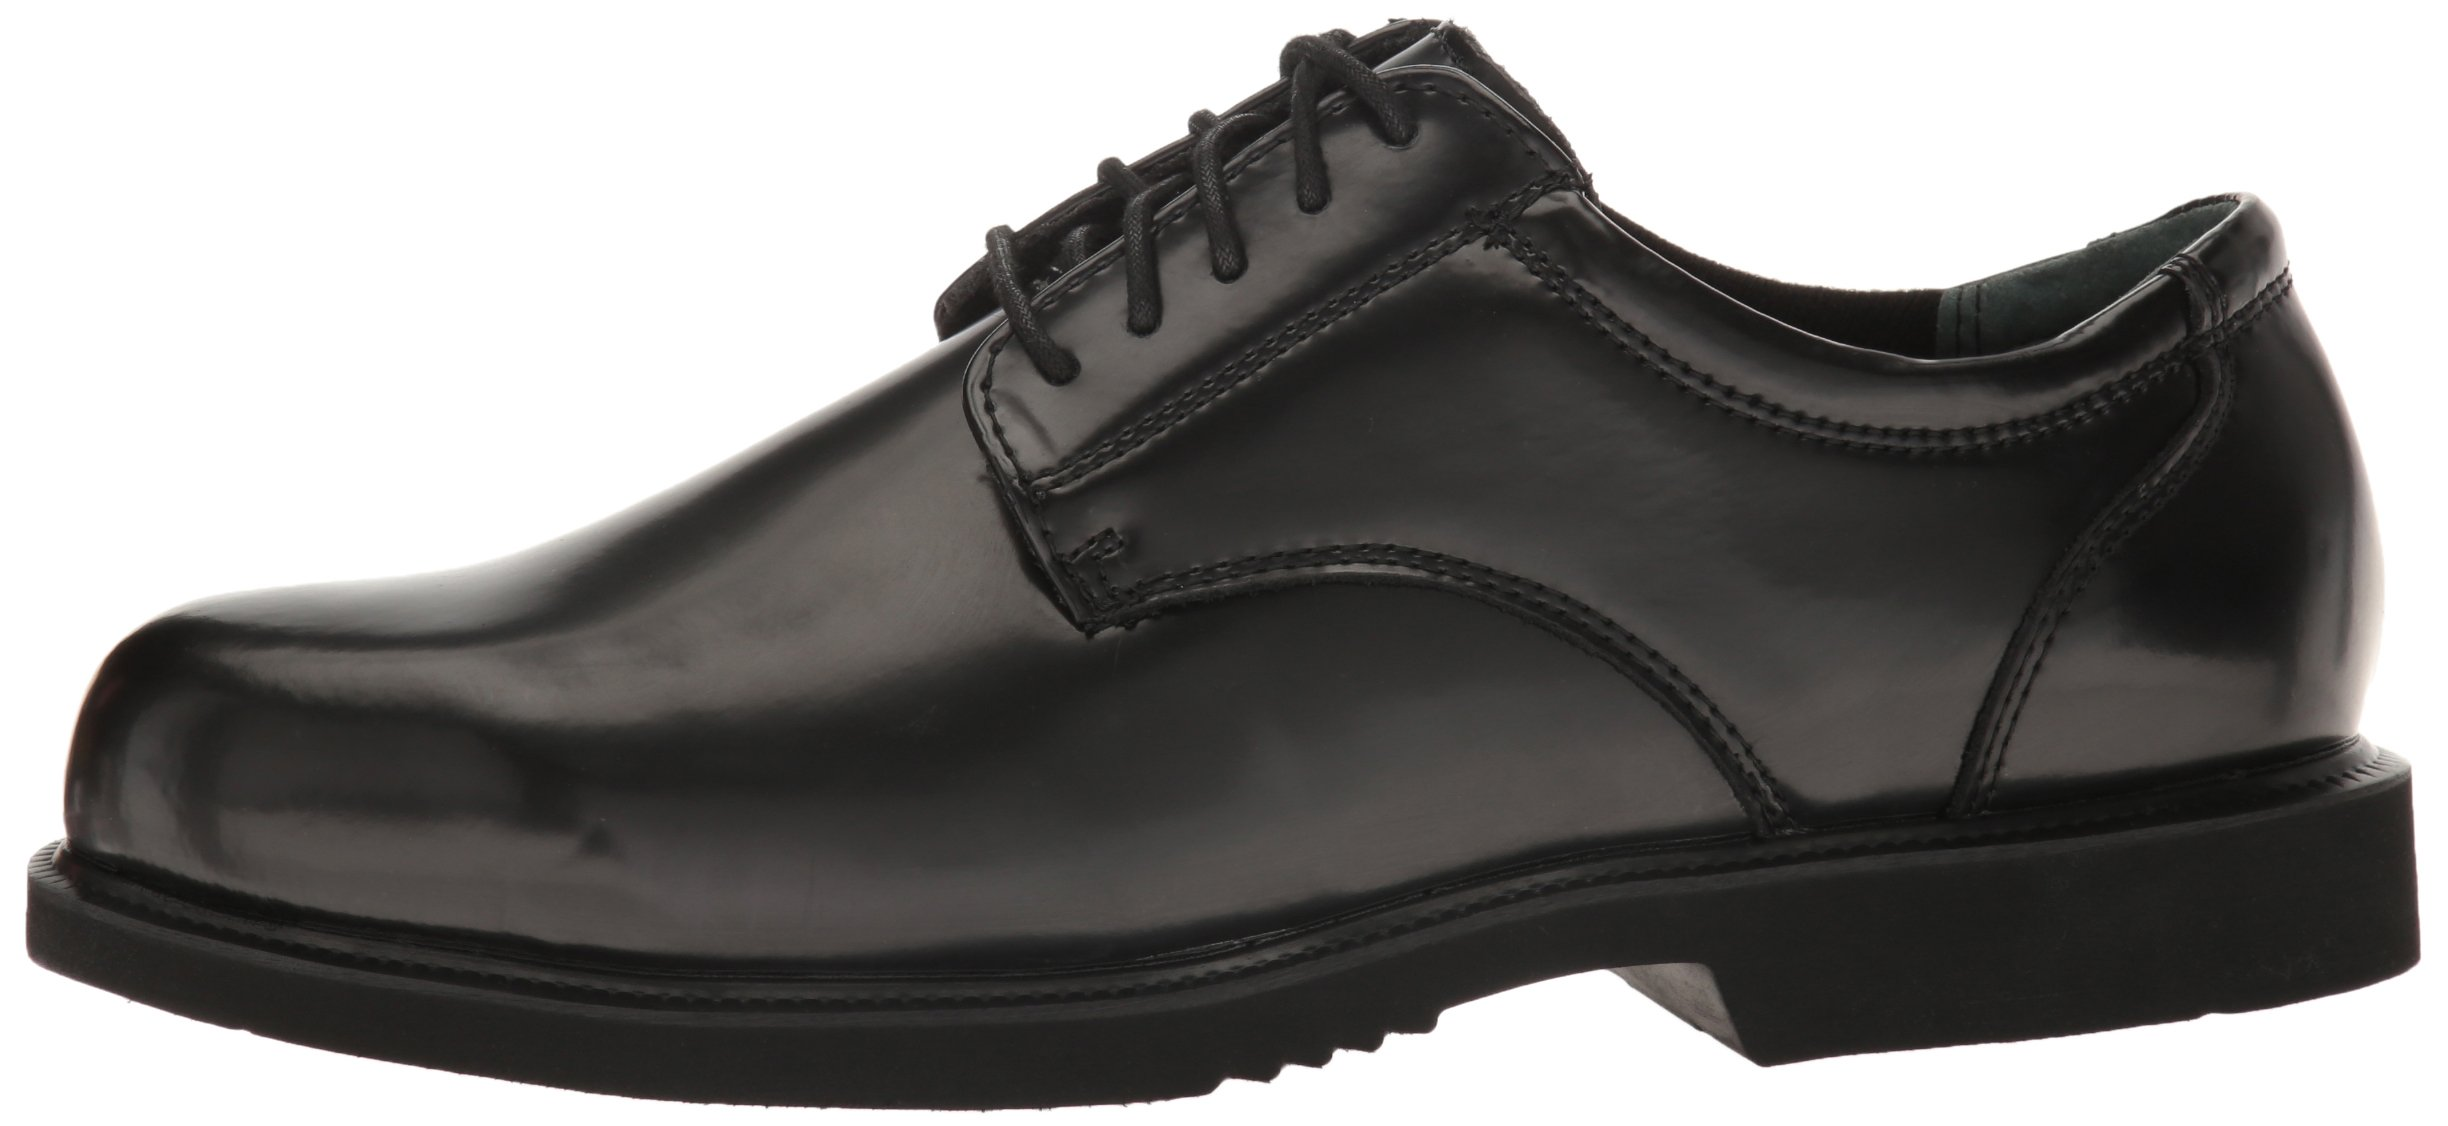 3e6175bd528 Thorogood Men's Academy Oxford - 834-6041 < Dress Shoes < Products ...